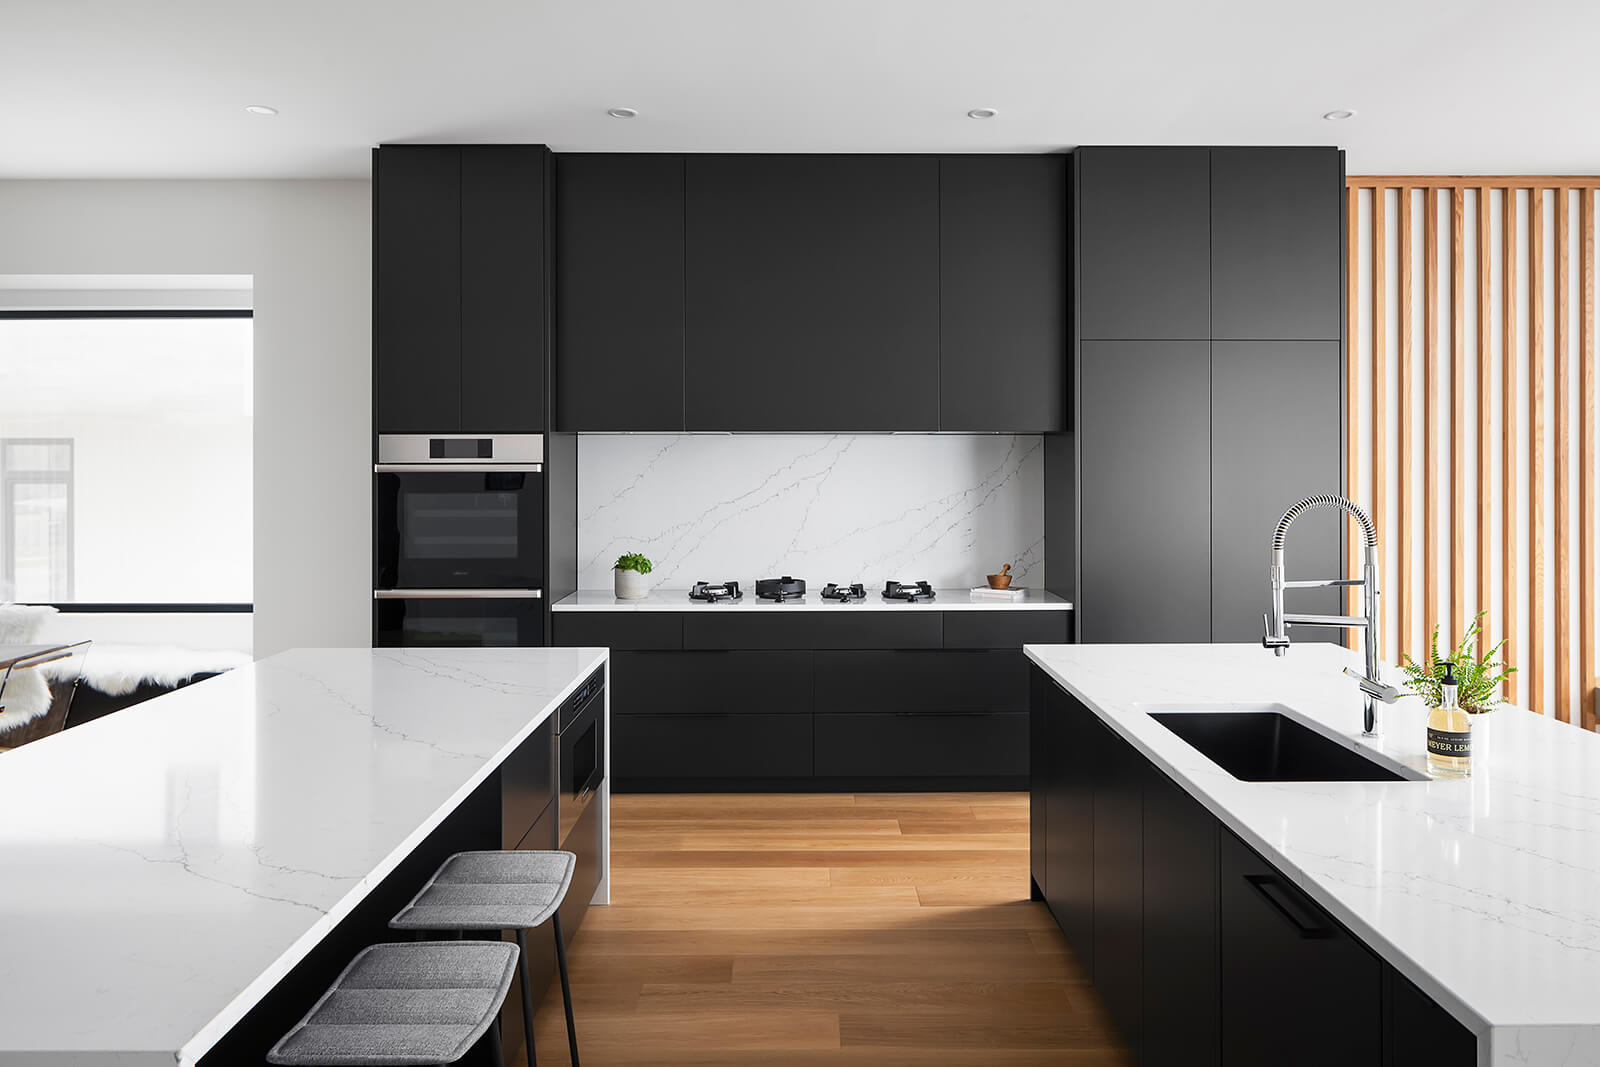 London Home Builders Millstone Homes - Home2 Kitchen One Point Final